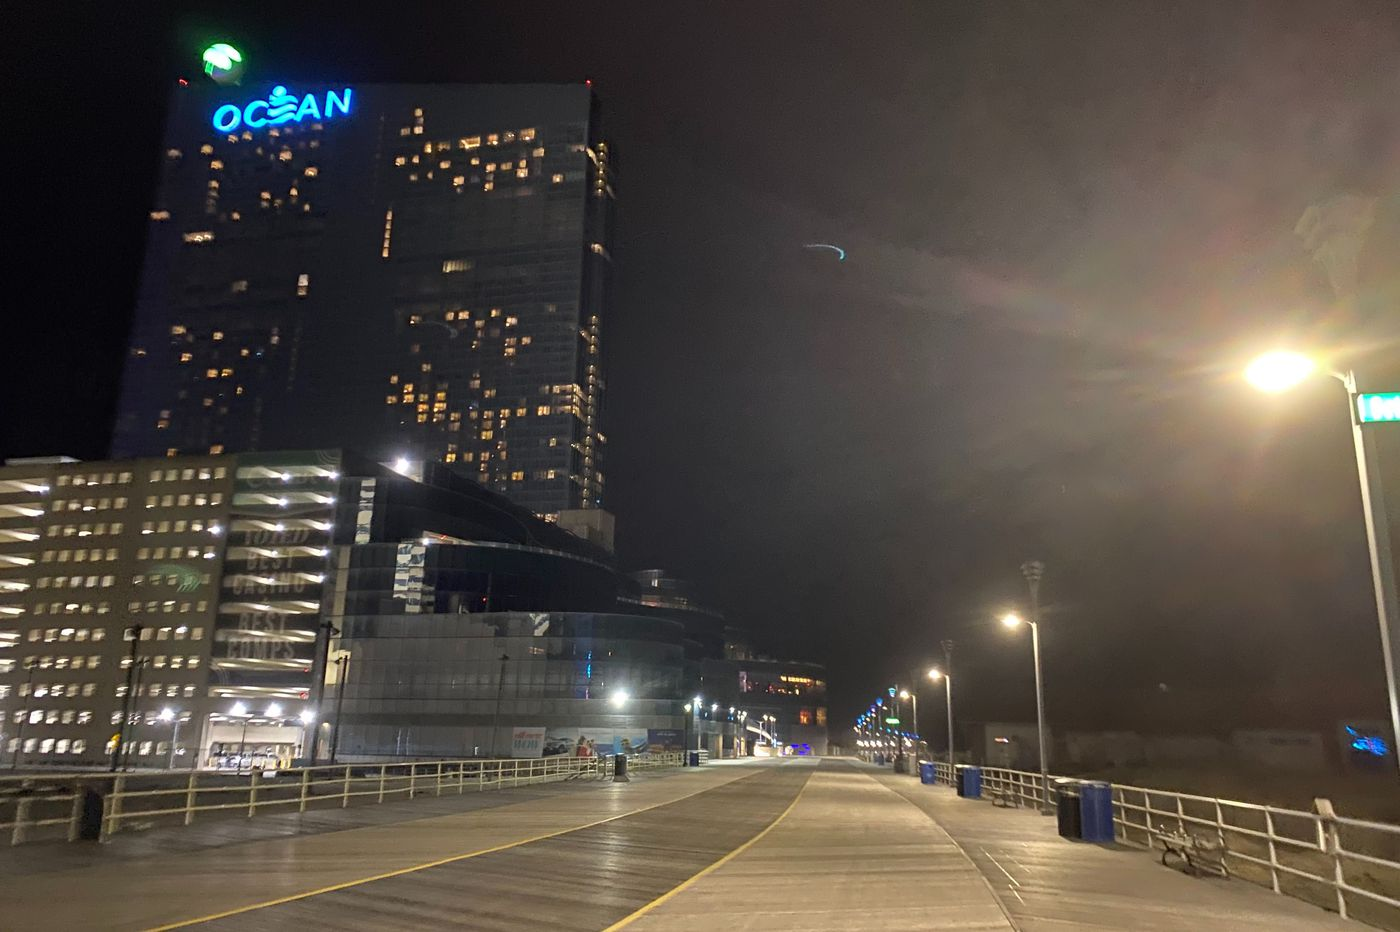 Relief and fear as Atlantic City's casinos shut down for fifth time in history